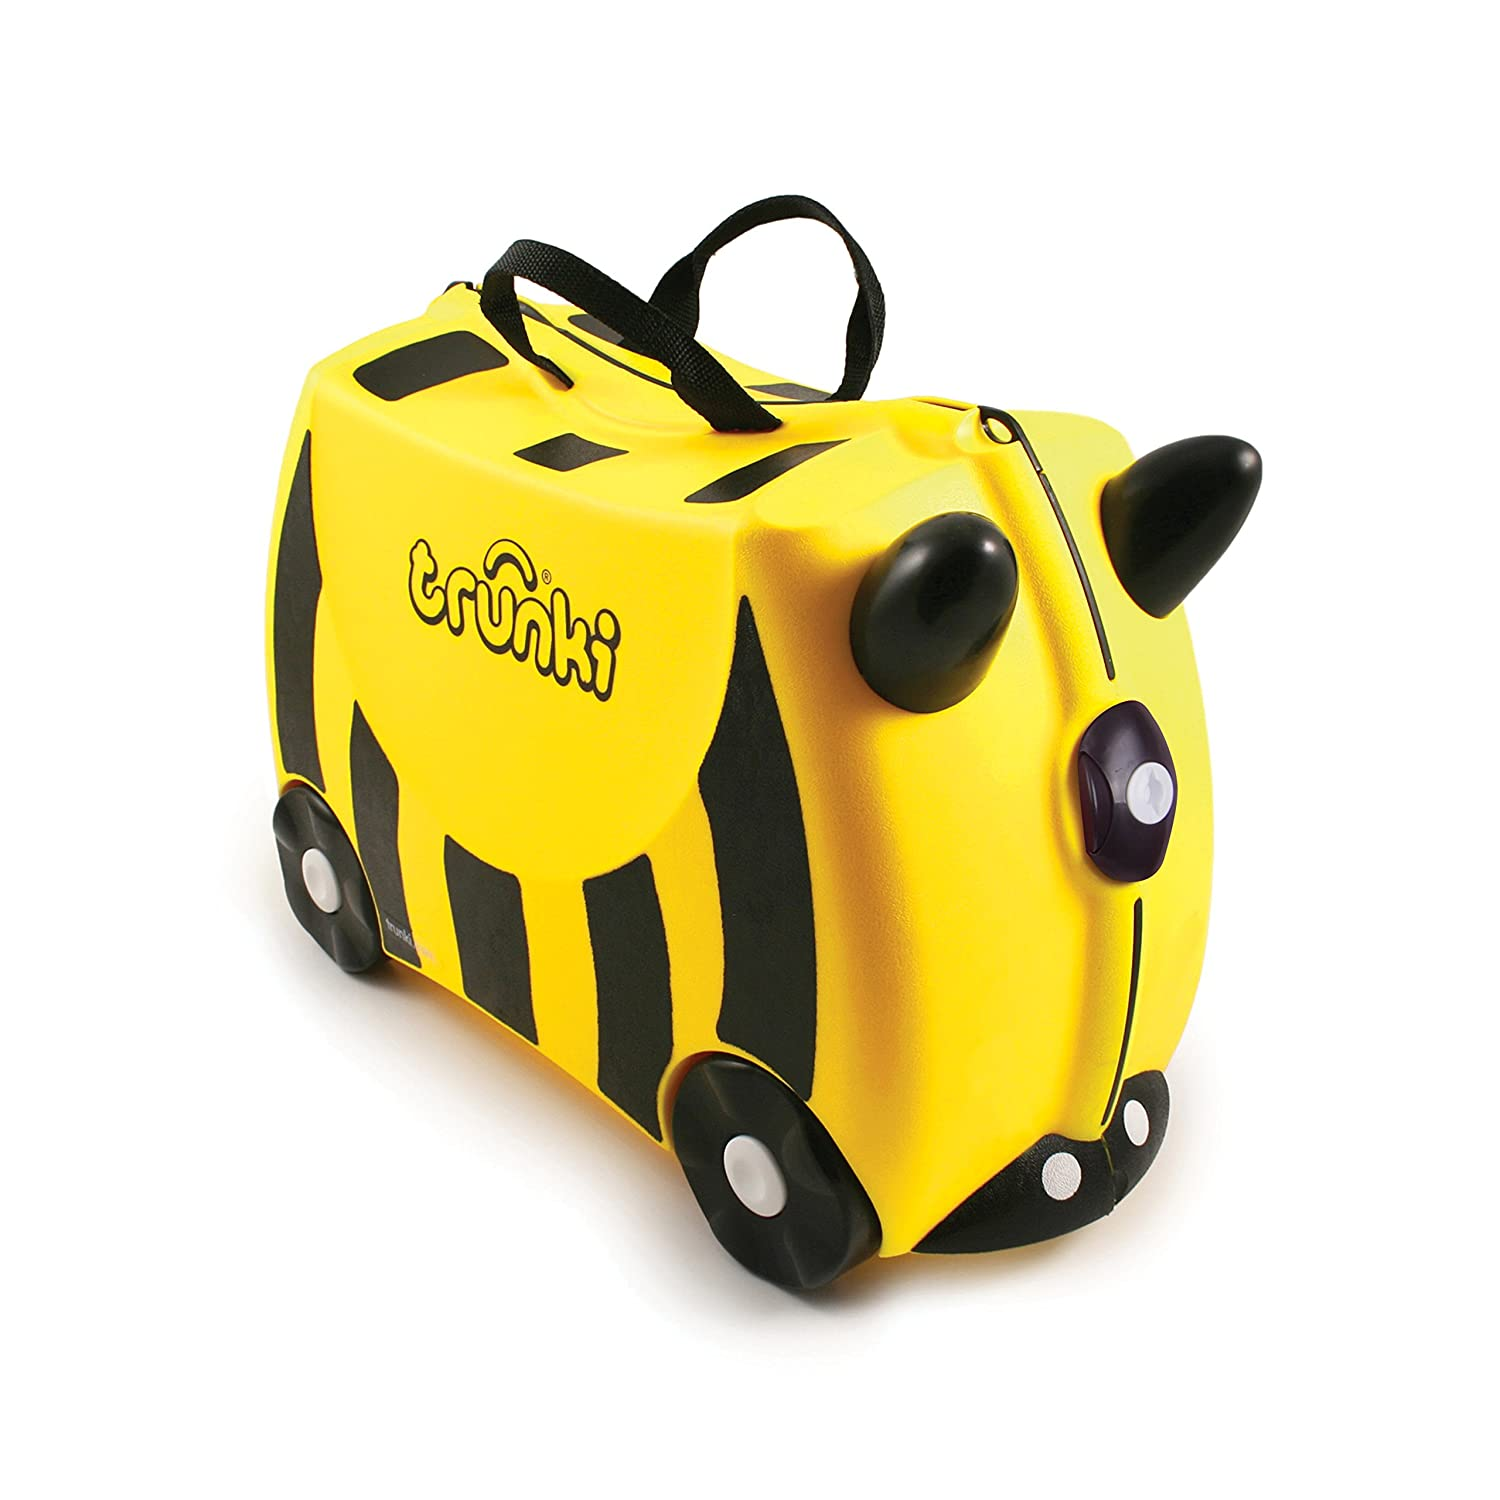 Amazon.com: Trunki: The Original Ride-On Suitcase NEW, Bernard ...